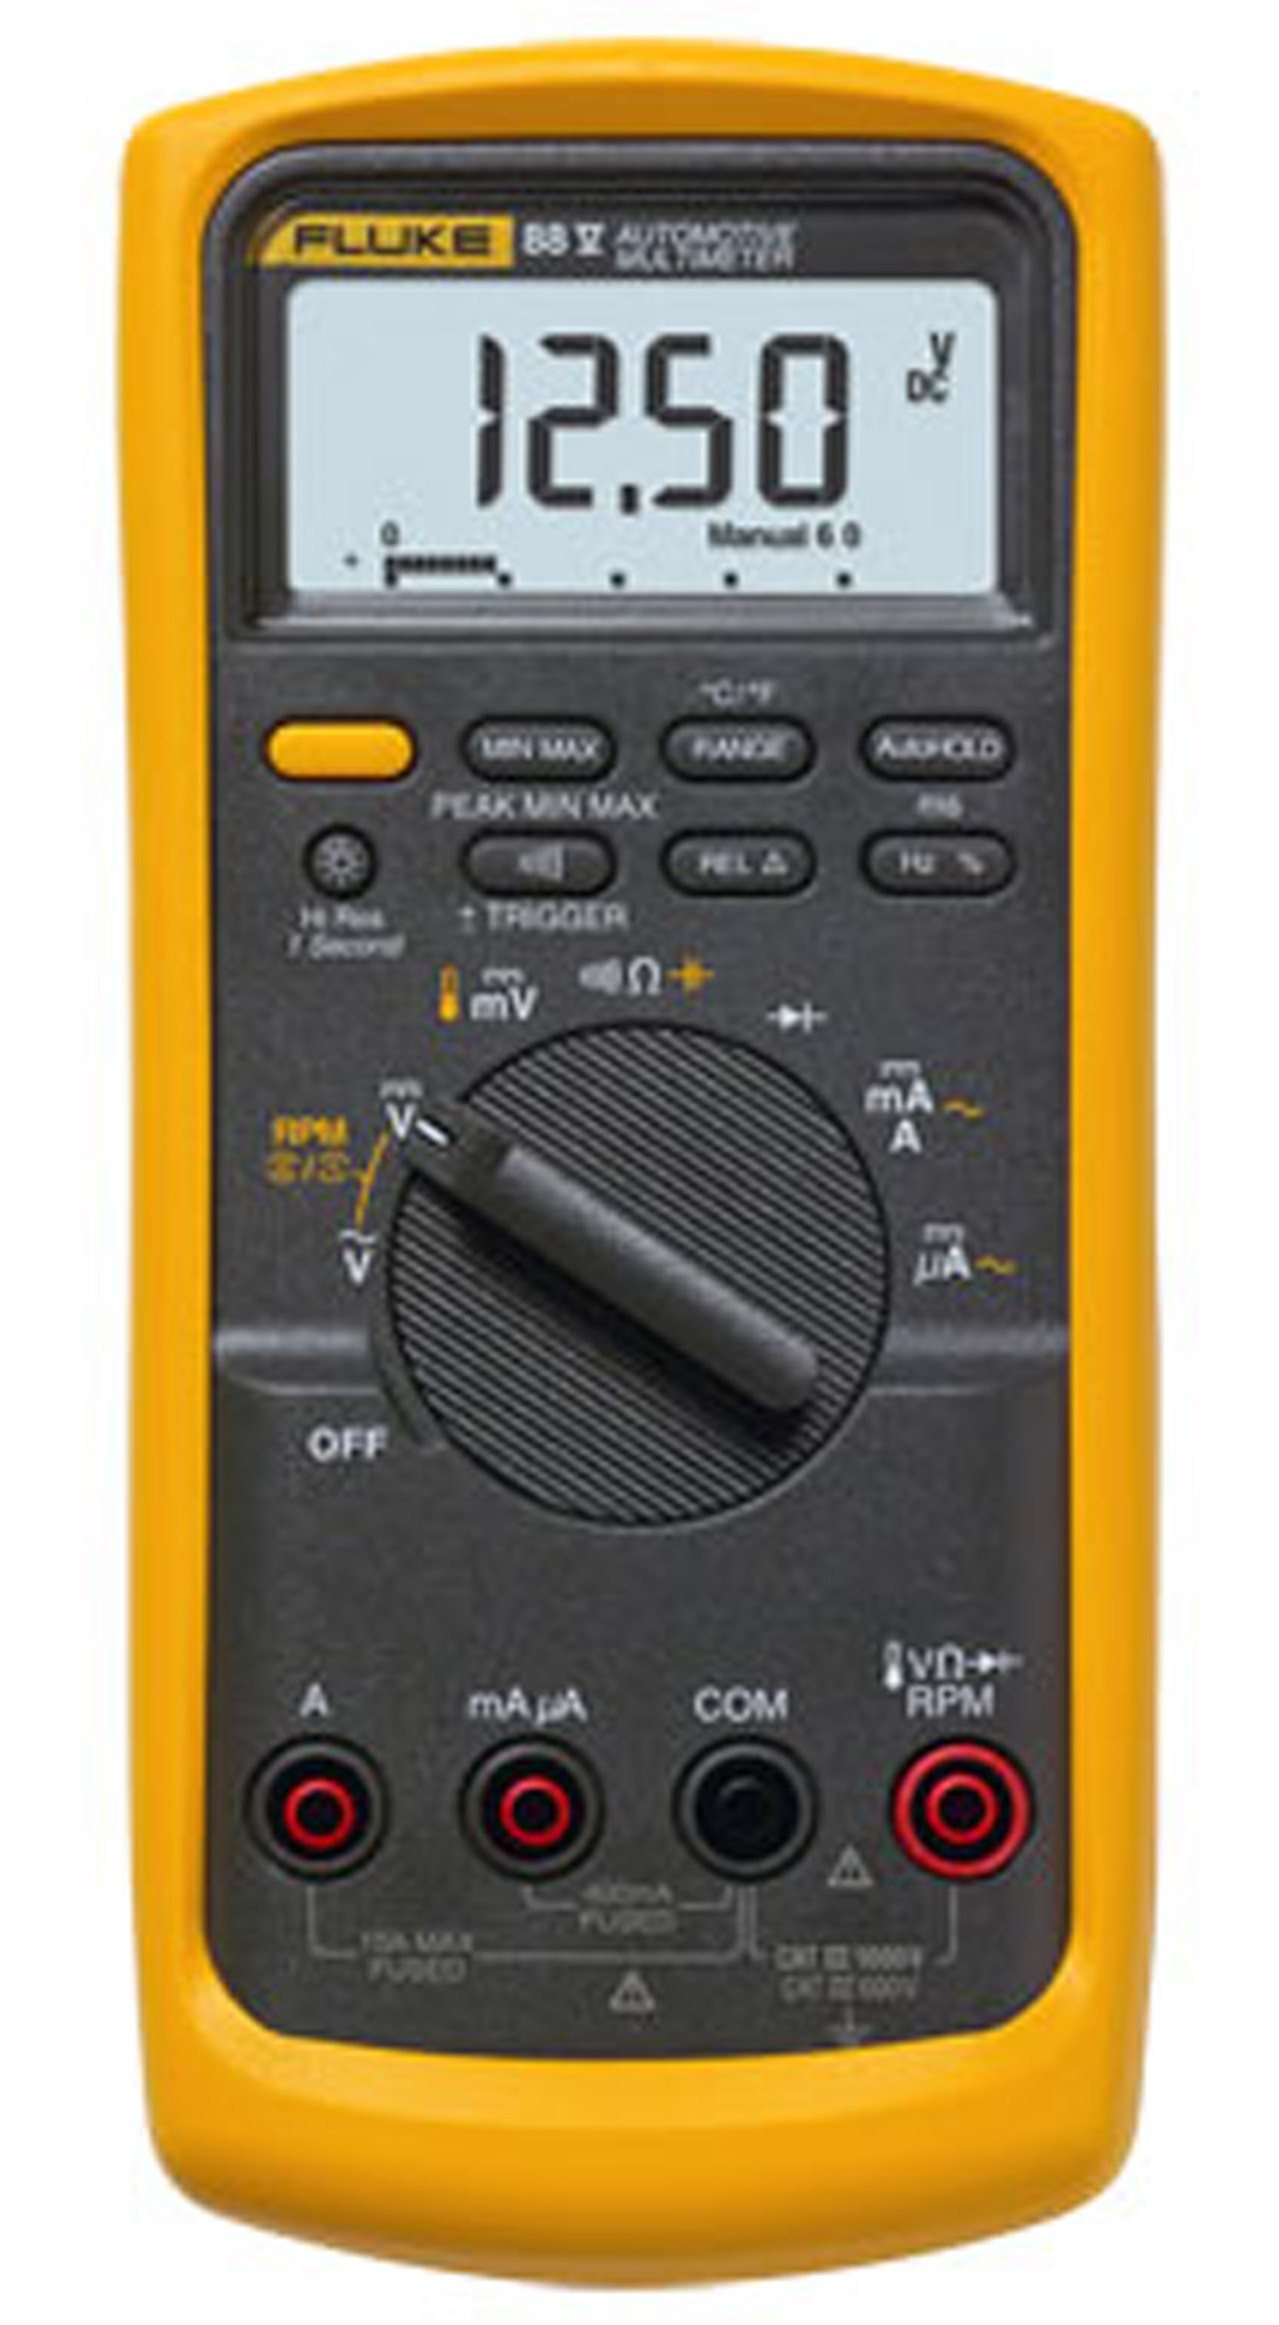 fluke 88v 88v deluxe automotive multimeter